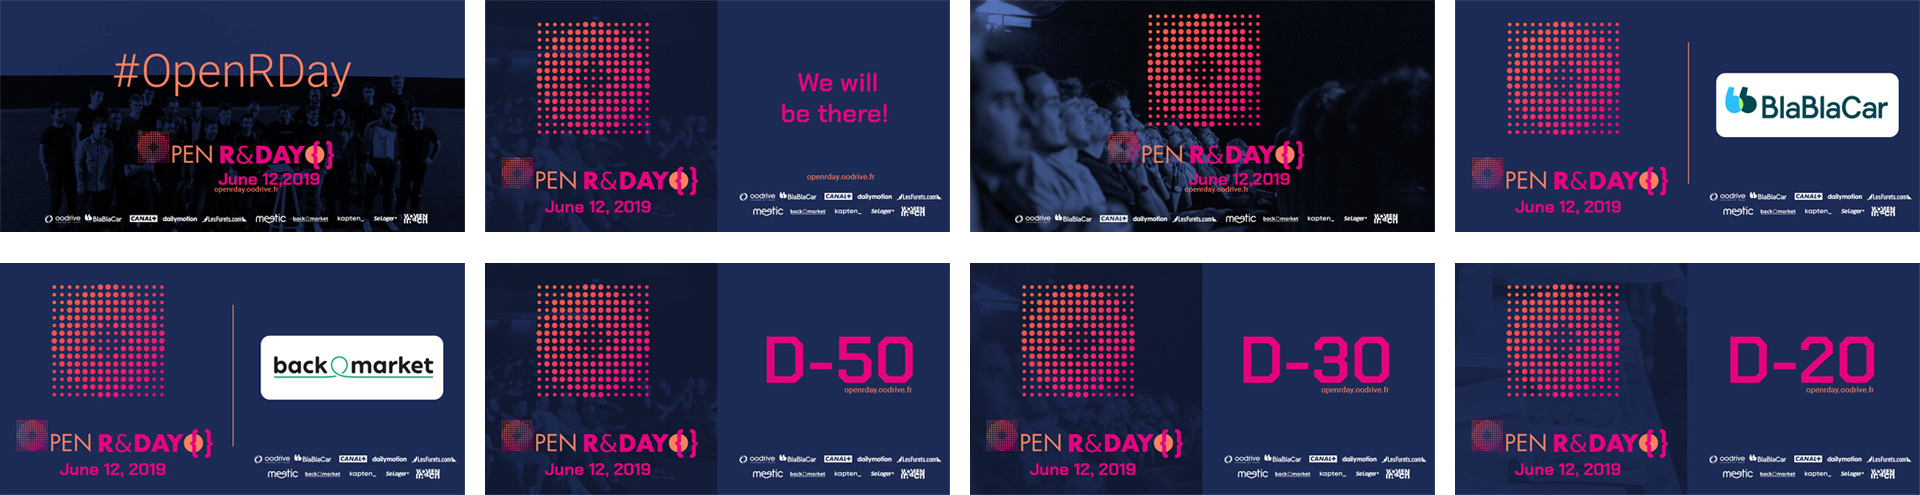 Open R&Day 2019